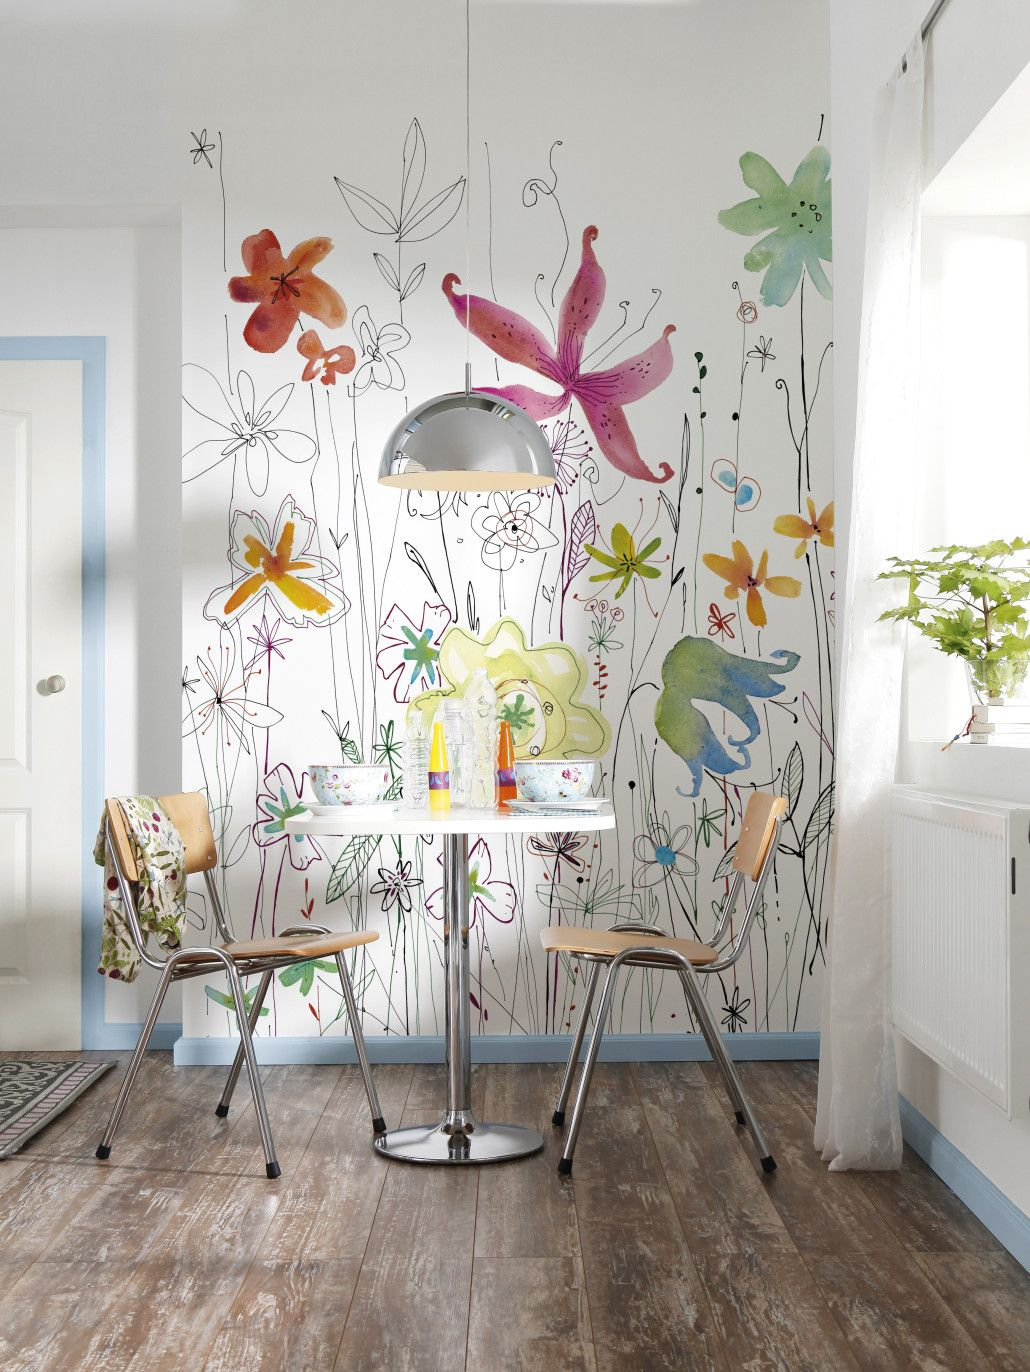 Fleurs Dessins panoramique Komar Walls Wall murals and Interiors